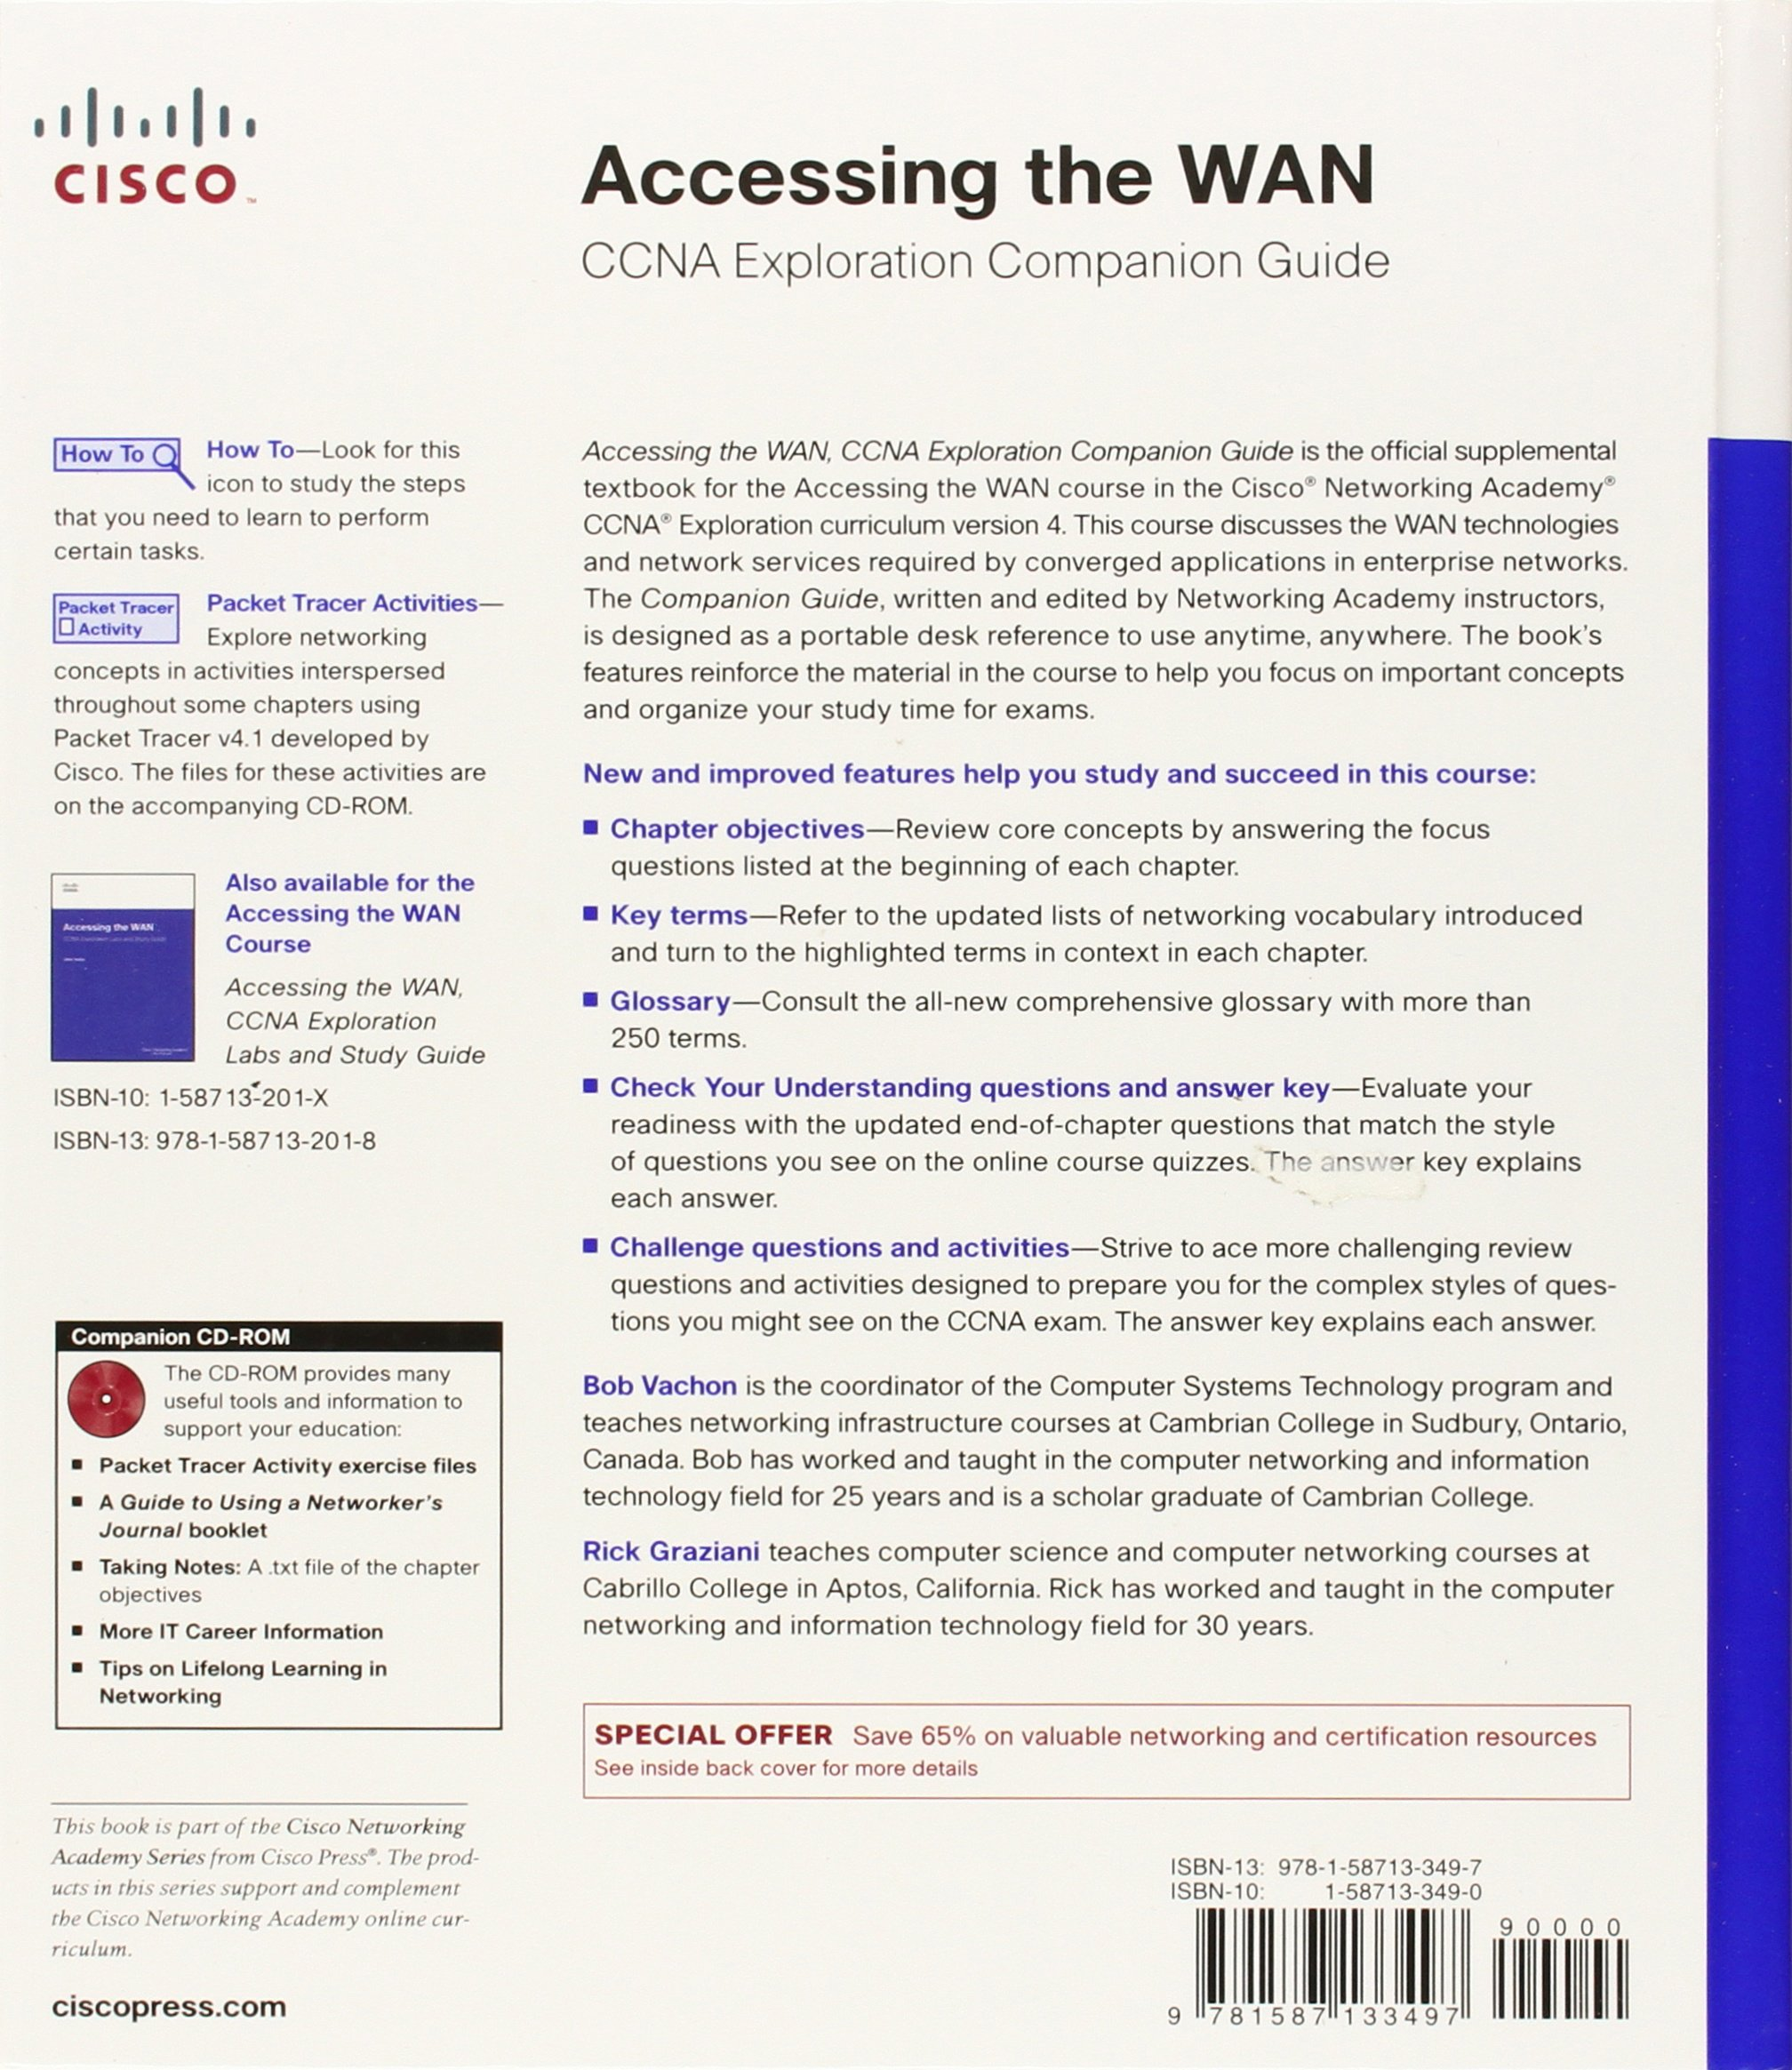 CCNA Exploration Companion Guide Accessing the WAN